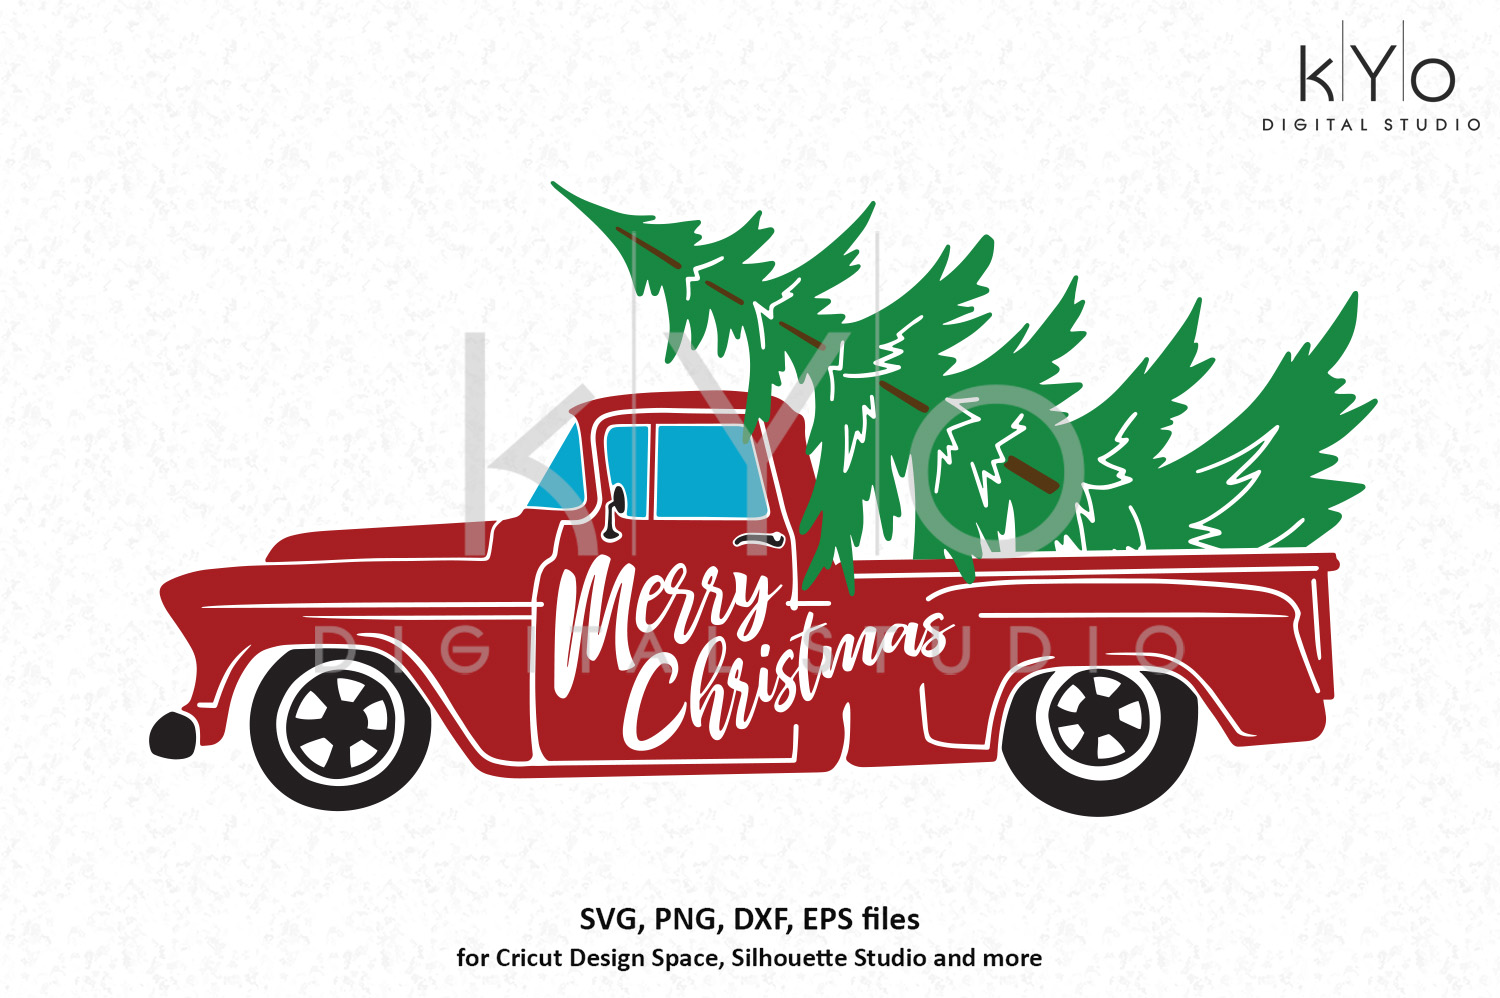 Merry Christmas truck SVG PNG DXF EPS files.